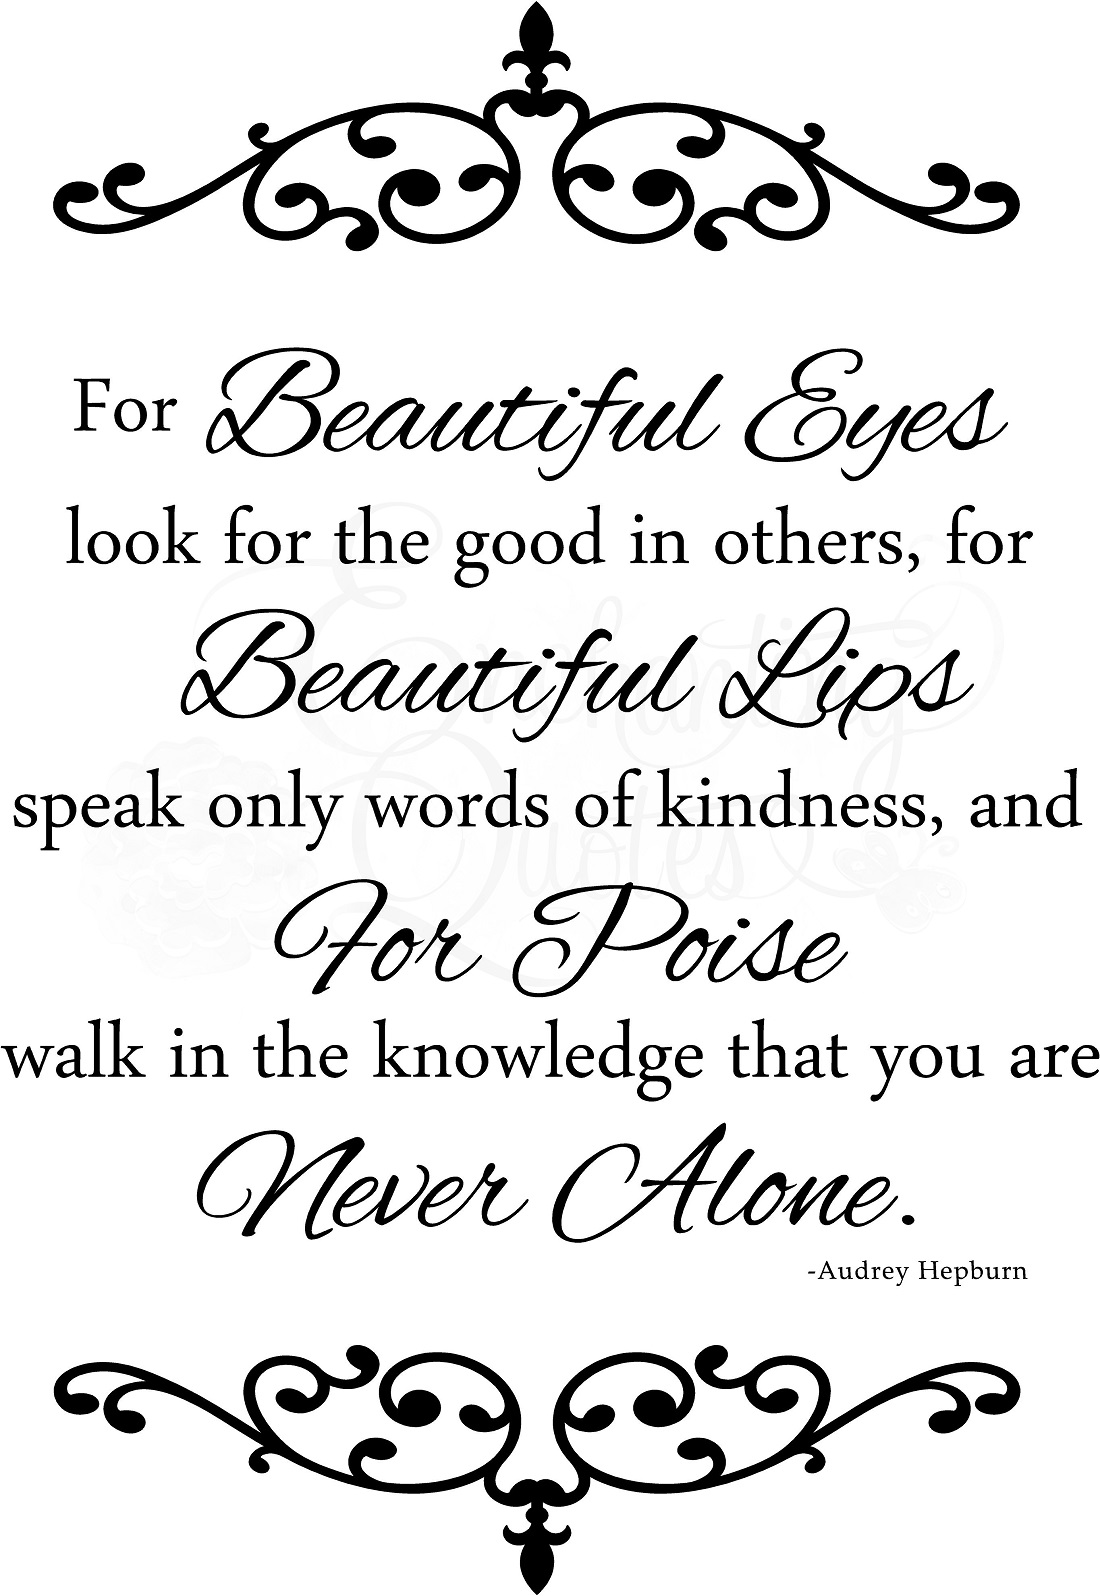 Quotes About Beauty - Inspirational Quotes - Quotes Shower ...